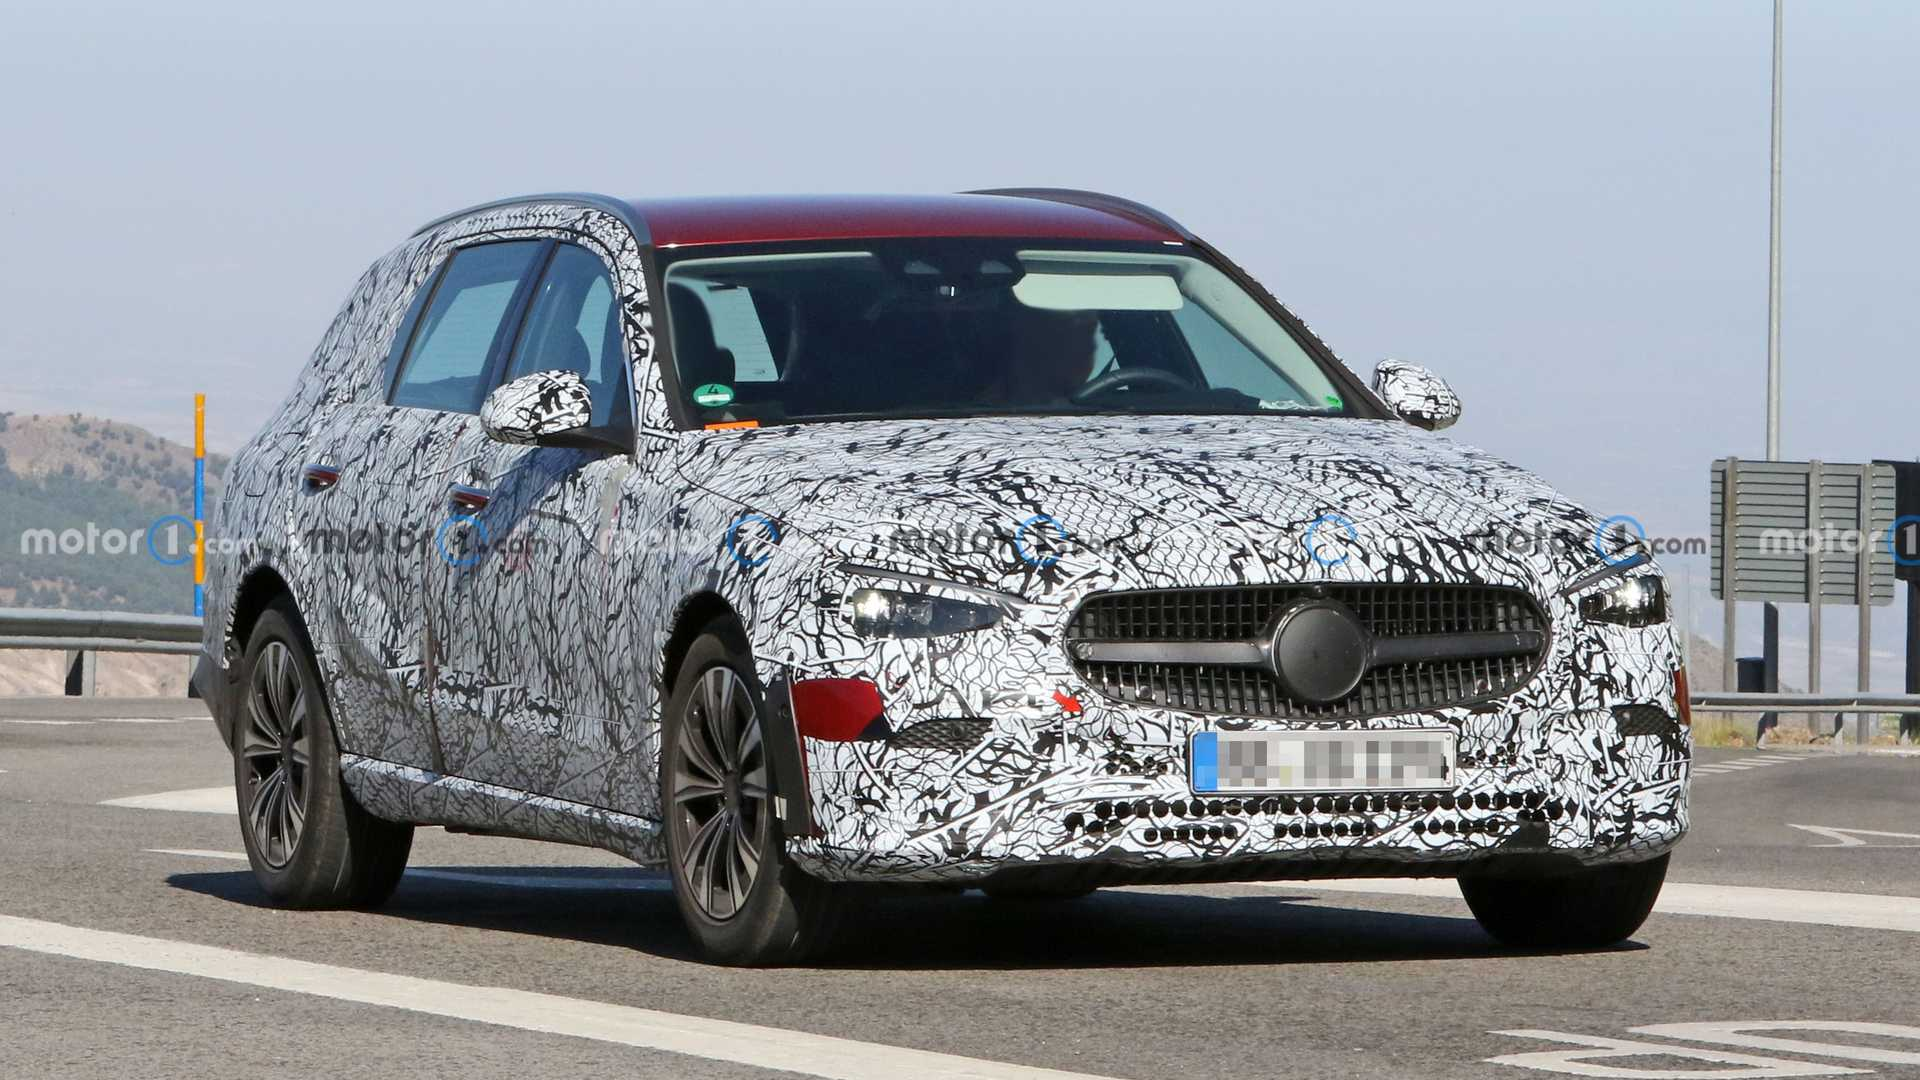 Mercedes-Benz unveiled the next-gen C-Сlass sedan and wagon in February this year (see video for details), along with announcing an All-Terrain version of the wagon. It has now been sighted on the streets.